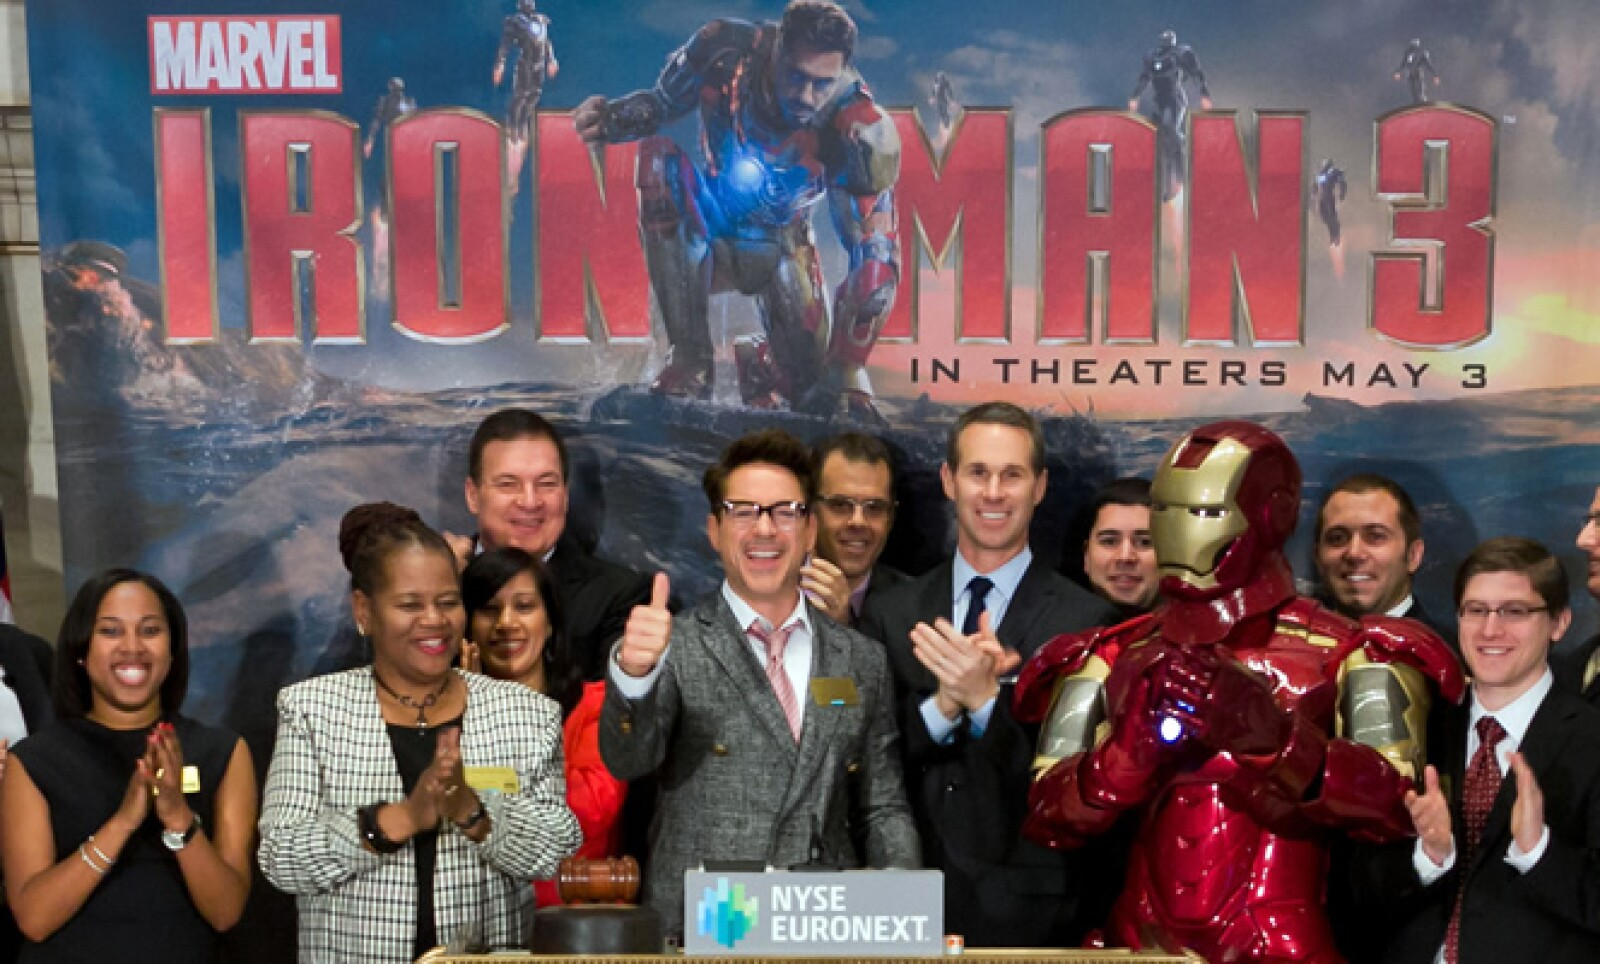 Iron Man y el actor Robert Downey Jr acudieron a la apertura del mercado en Nueva York.